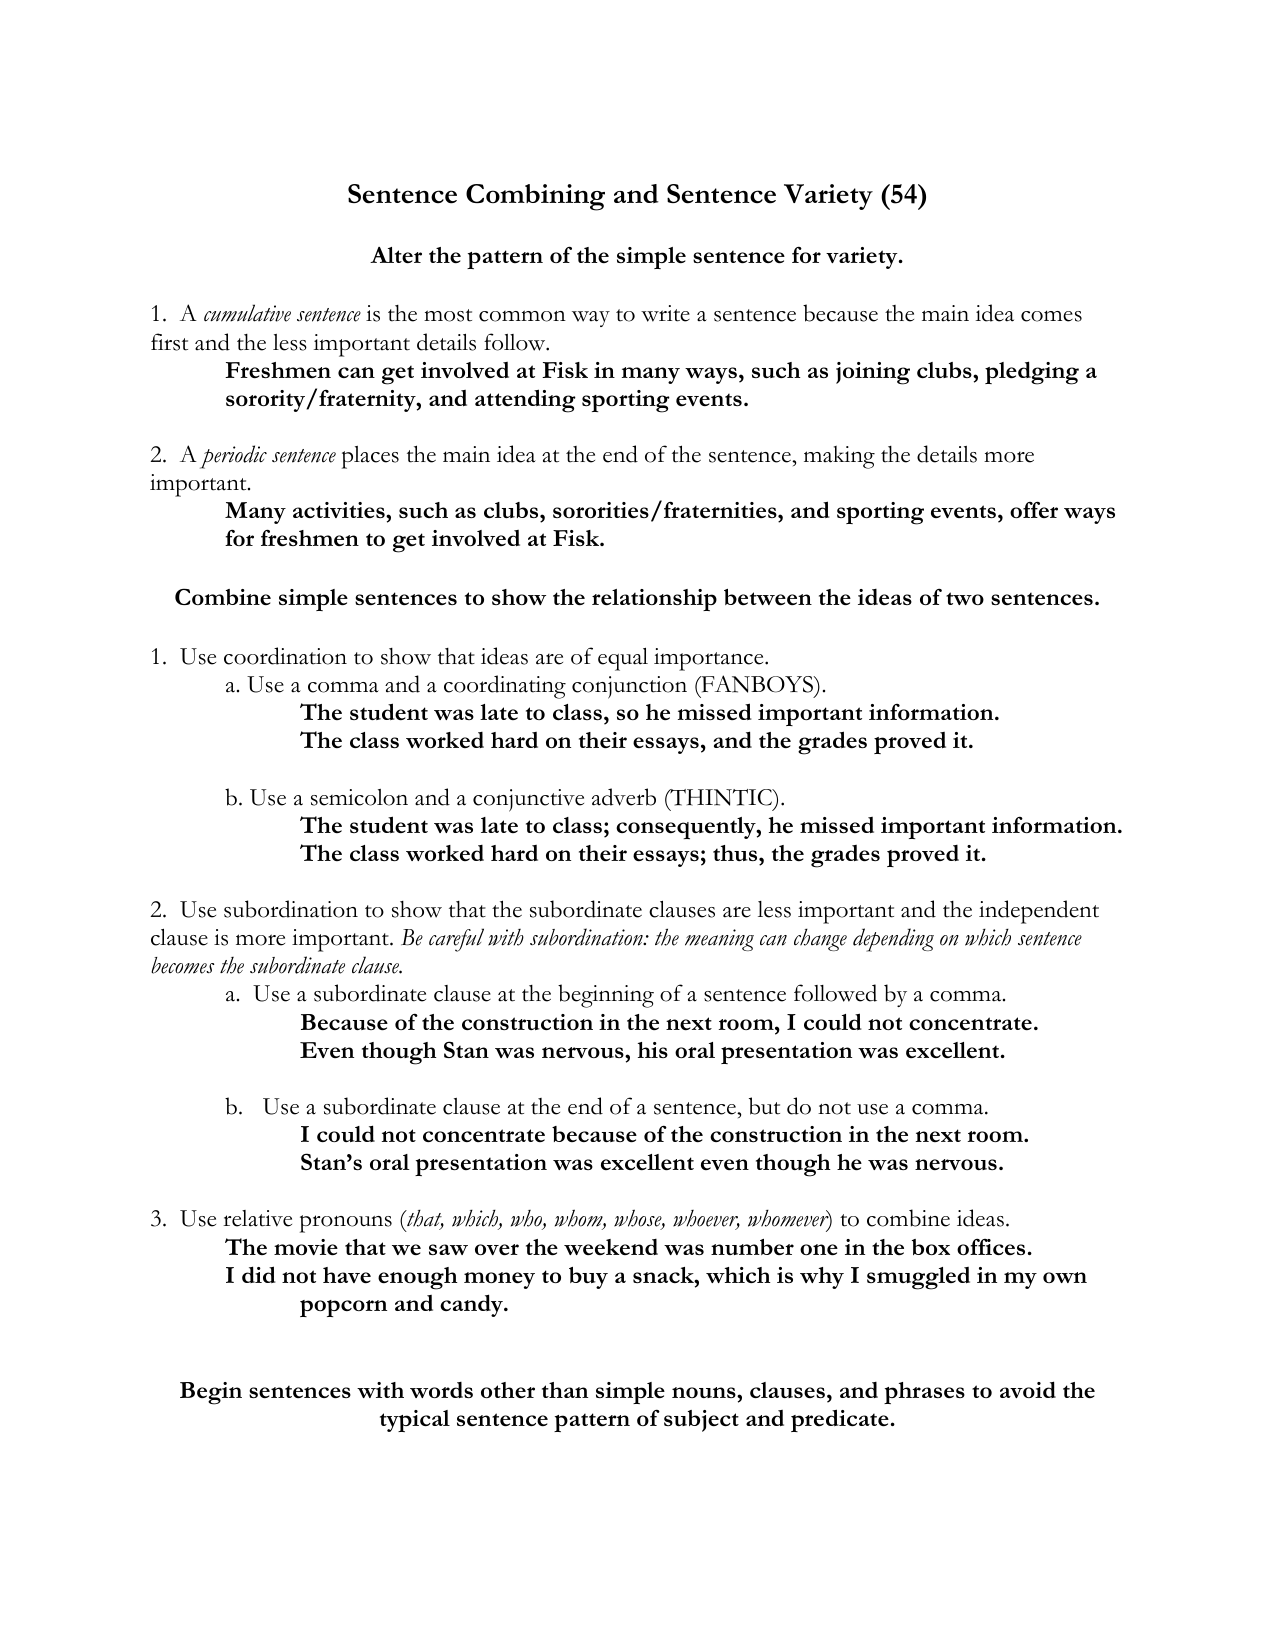 worksheet Conjunctive Adverbs Worksheets sentence combining and variety tutorial 9